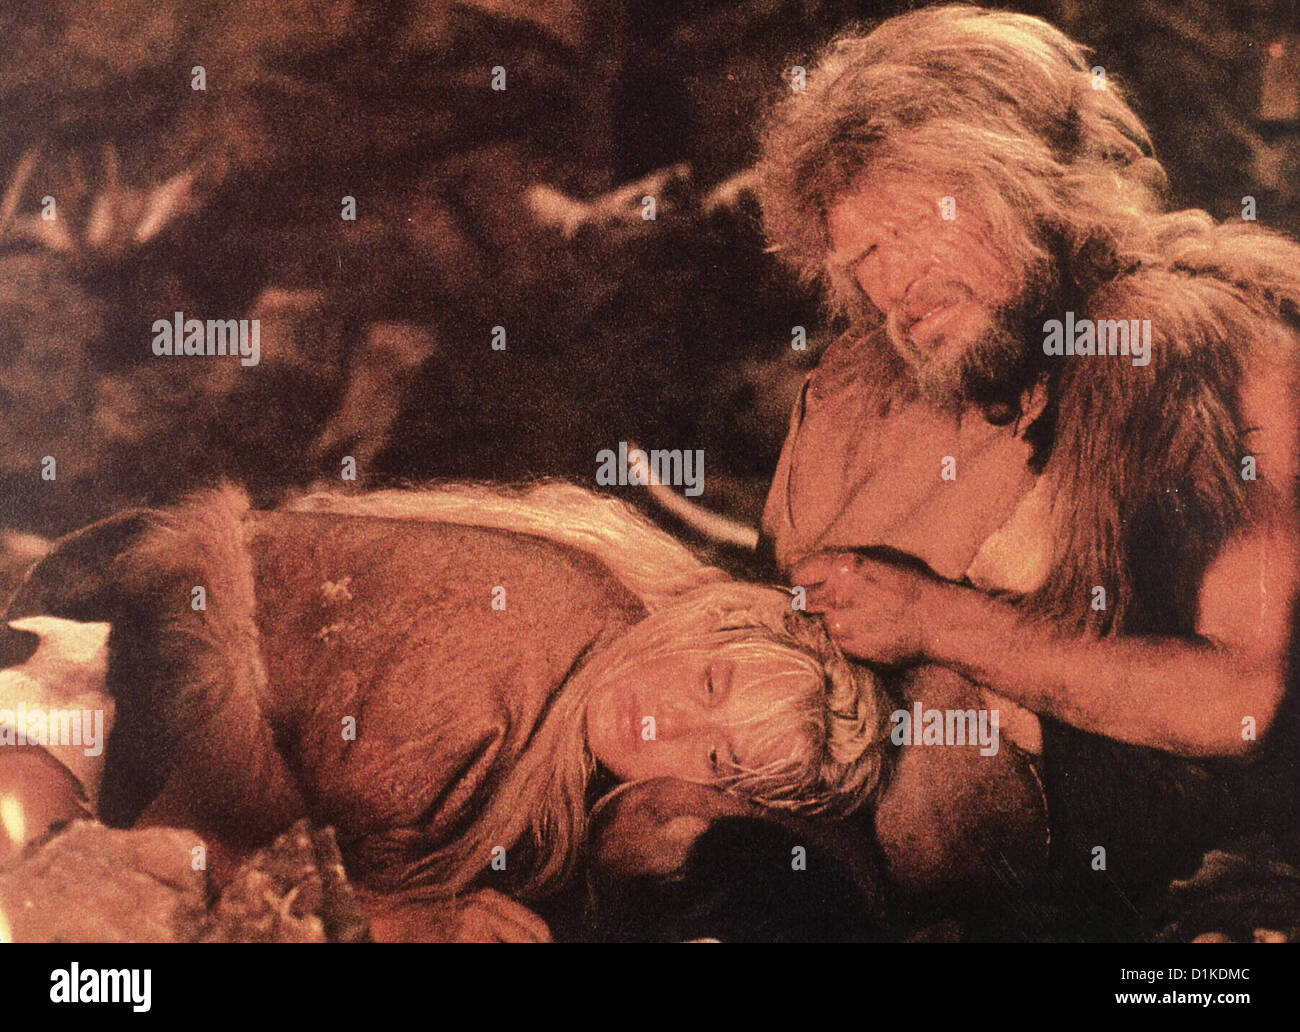 Ayla Clan Of The Cave Bear Movie 46205 Usbdata